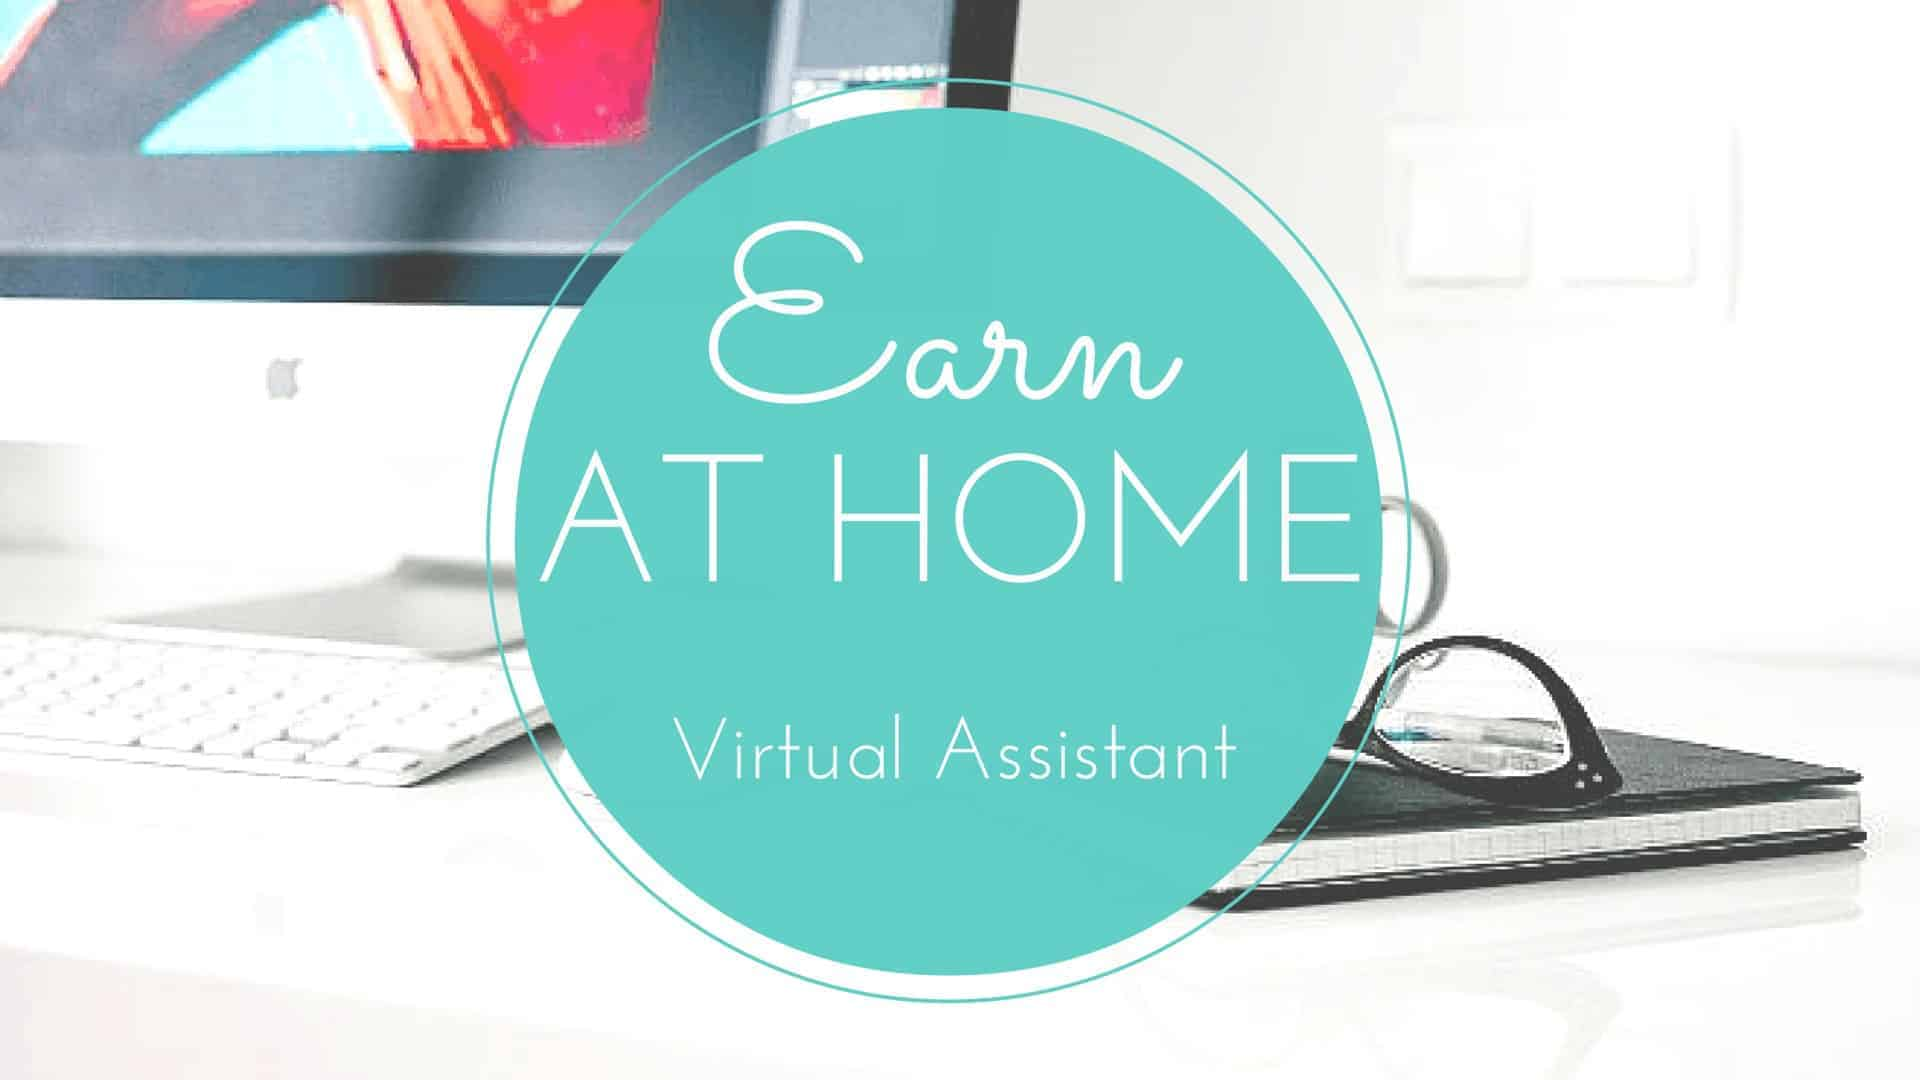 Earn at home series: How you can become a virtual assistant and earn an income from home